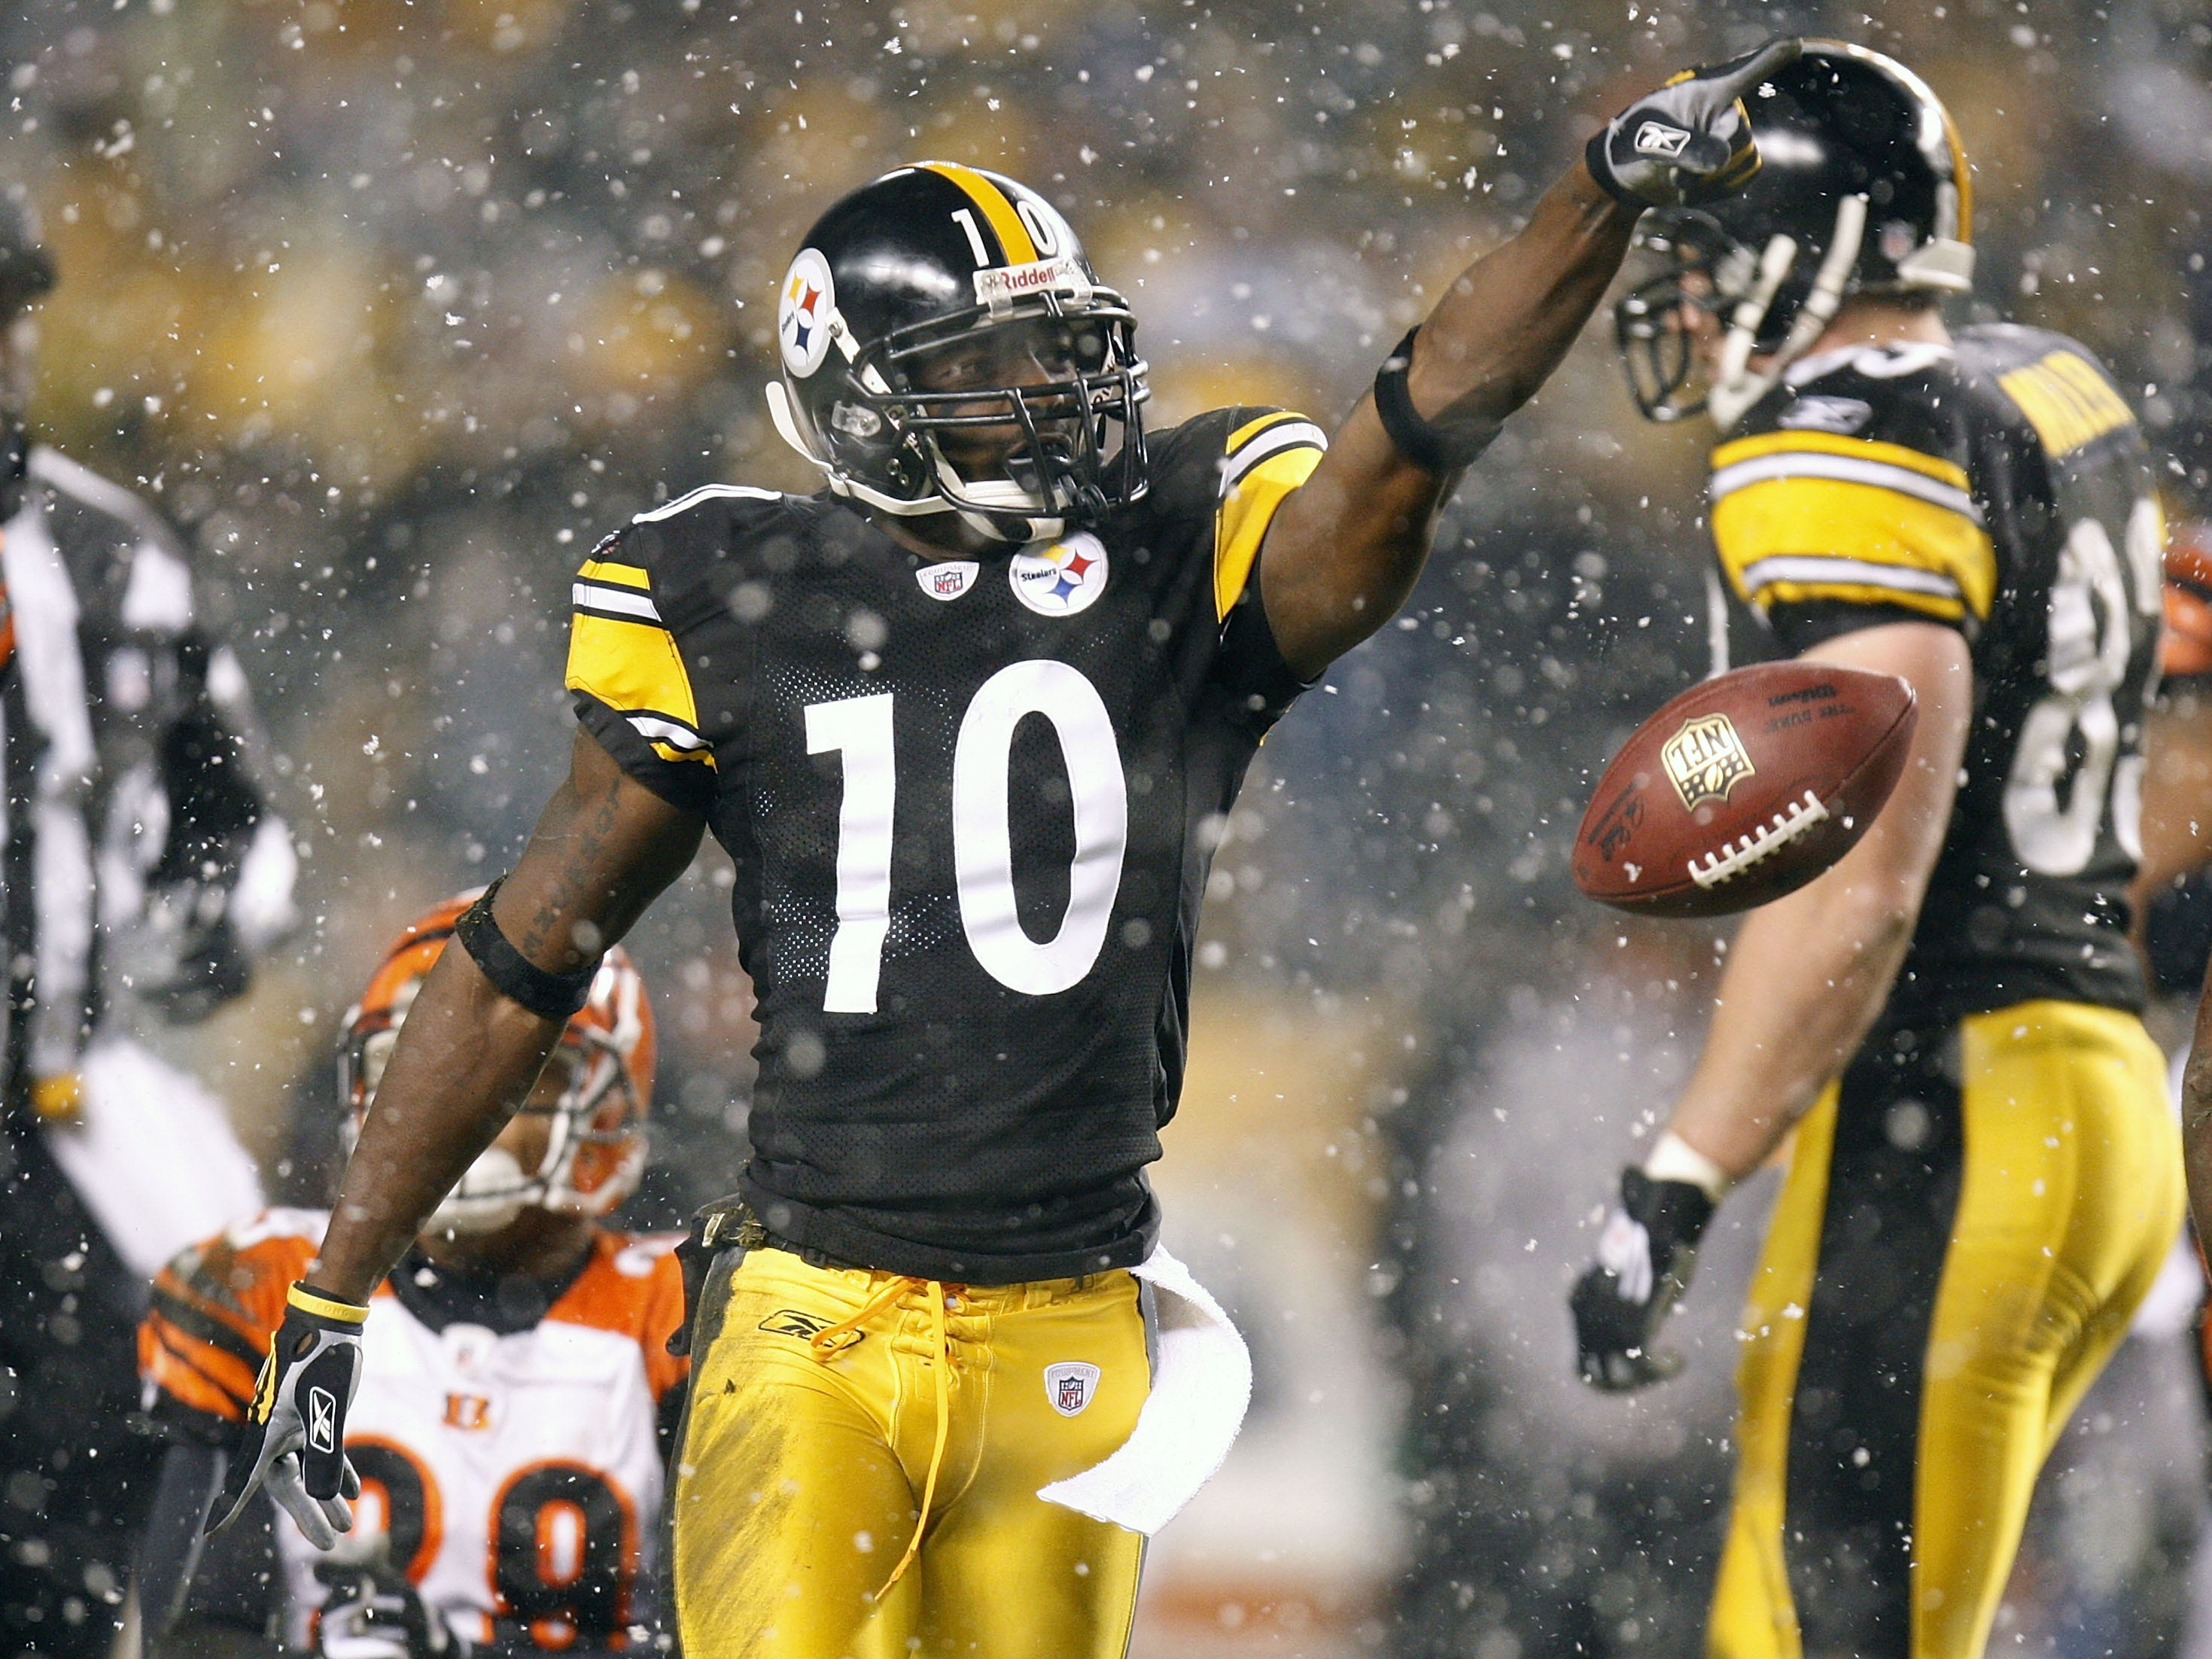 Nov. 20, 2008: Pittsburgh Steelers receiver Santonio Holmes reacts after a  catch for a first down while playing the Cincinnati Bengals at Heinz Field.  The Steelers won the game, 27-10.